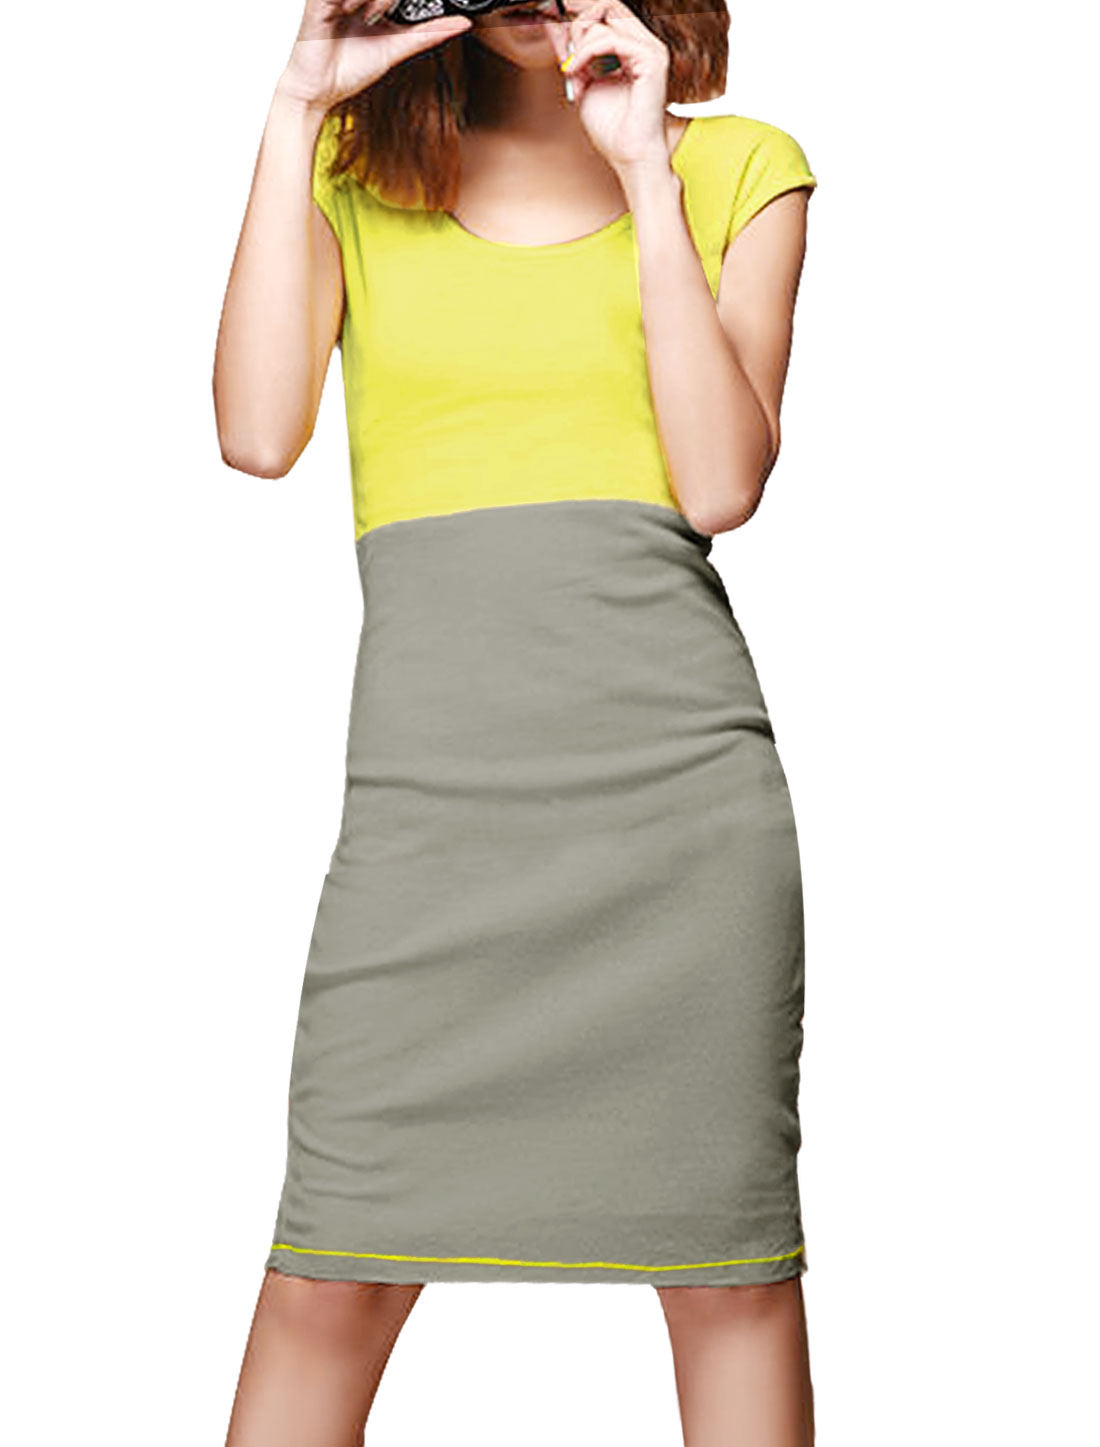 Stylish Ladies Yellow Light Gray Color Blocking Knee-Length Dress L